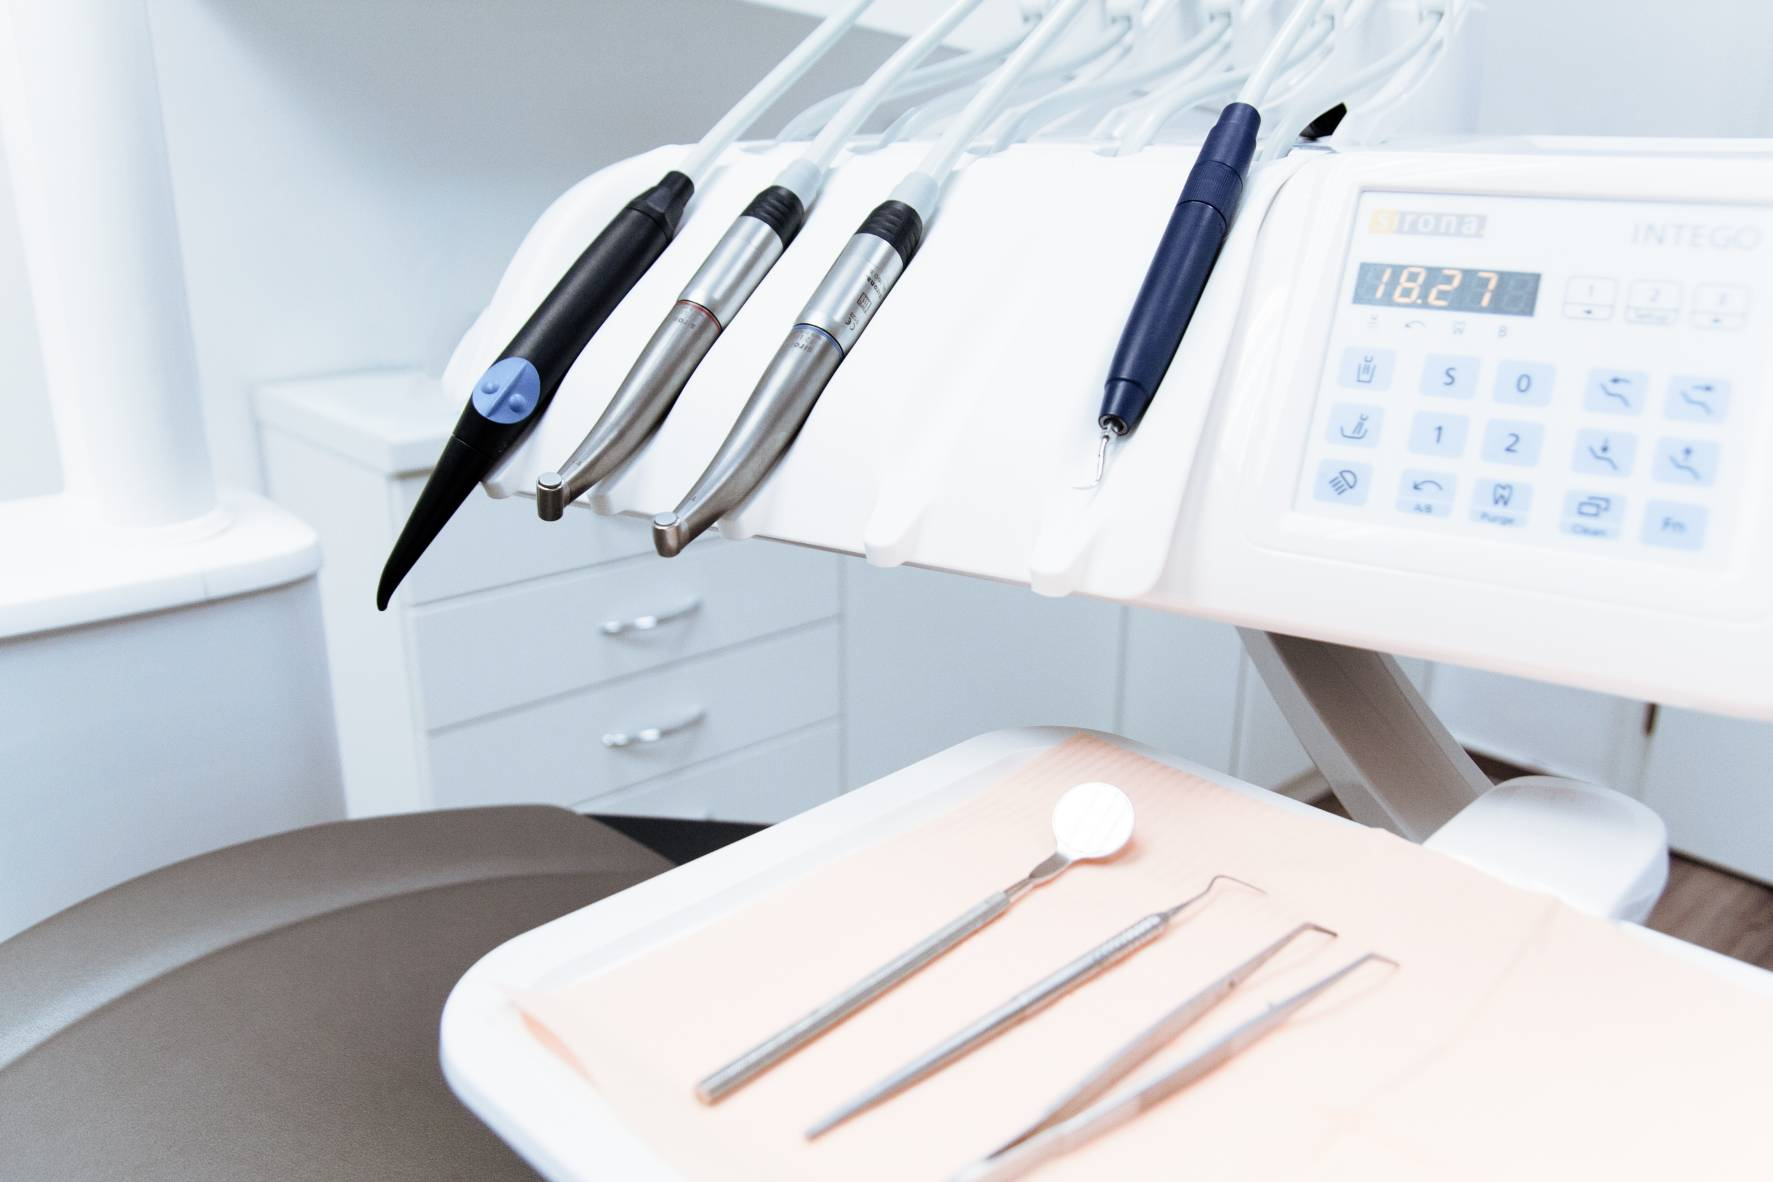 Canva - Dental Tool Set